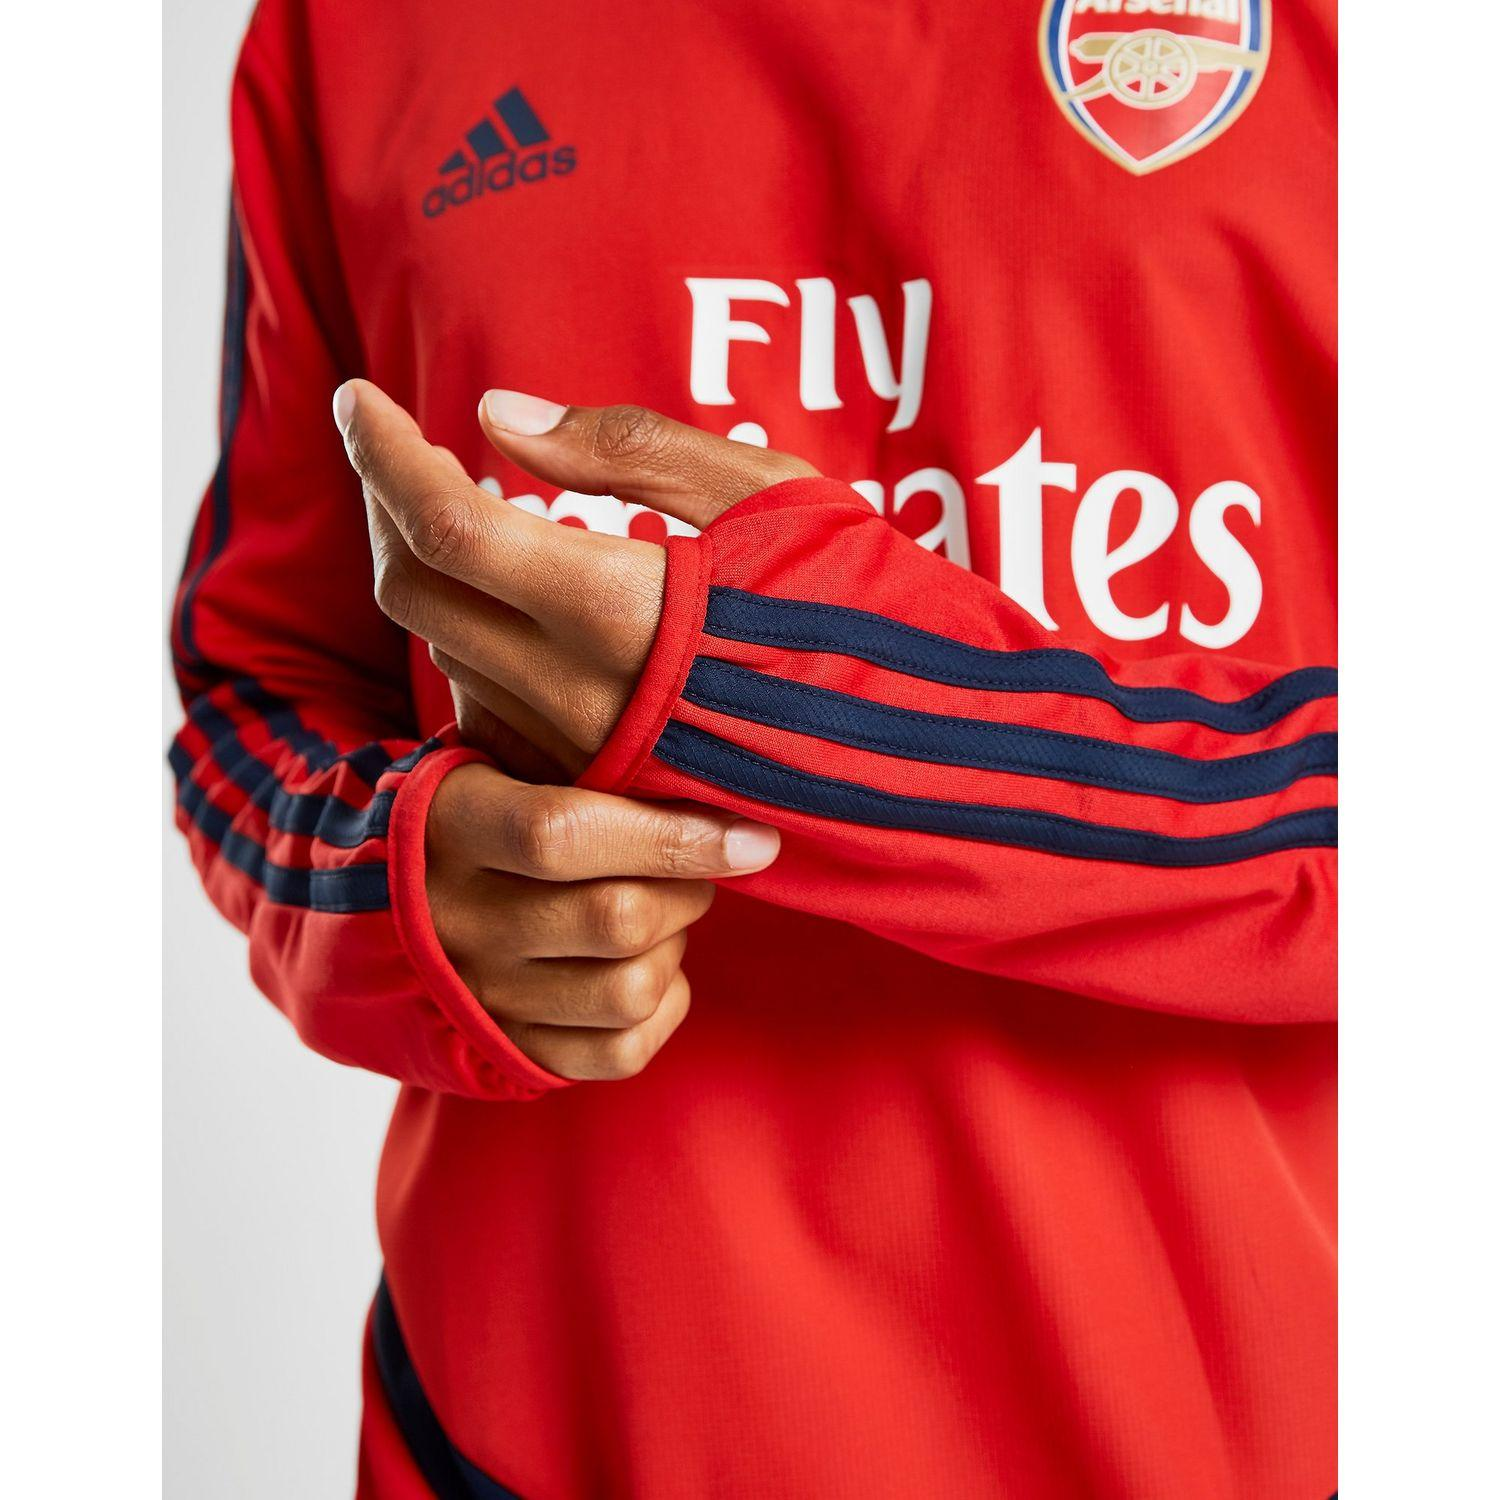 97a9f53f Adidas - Red Arsenal Fc Warm Top for Men - Lyst. View fullscreen